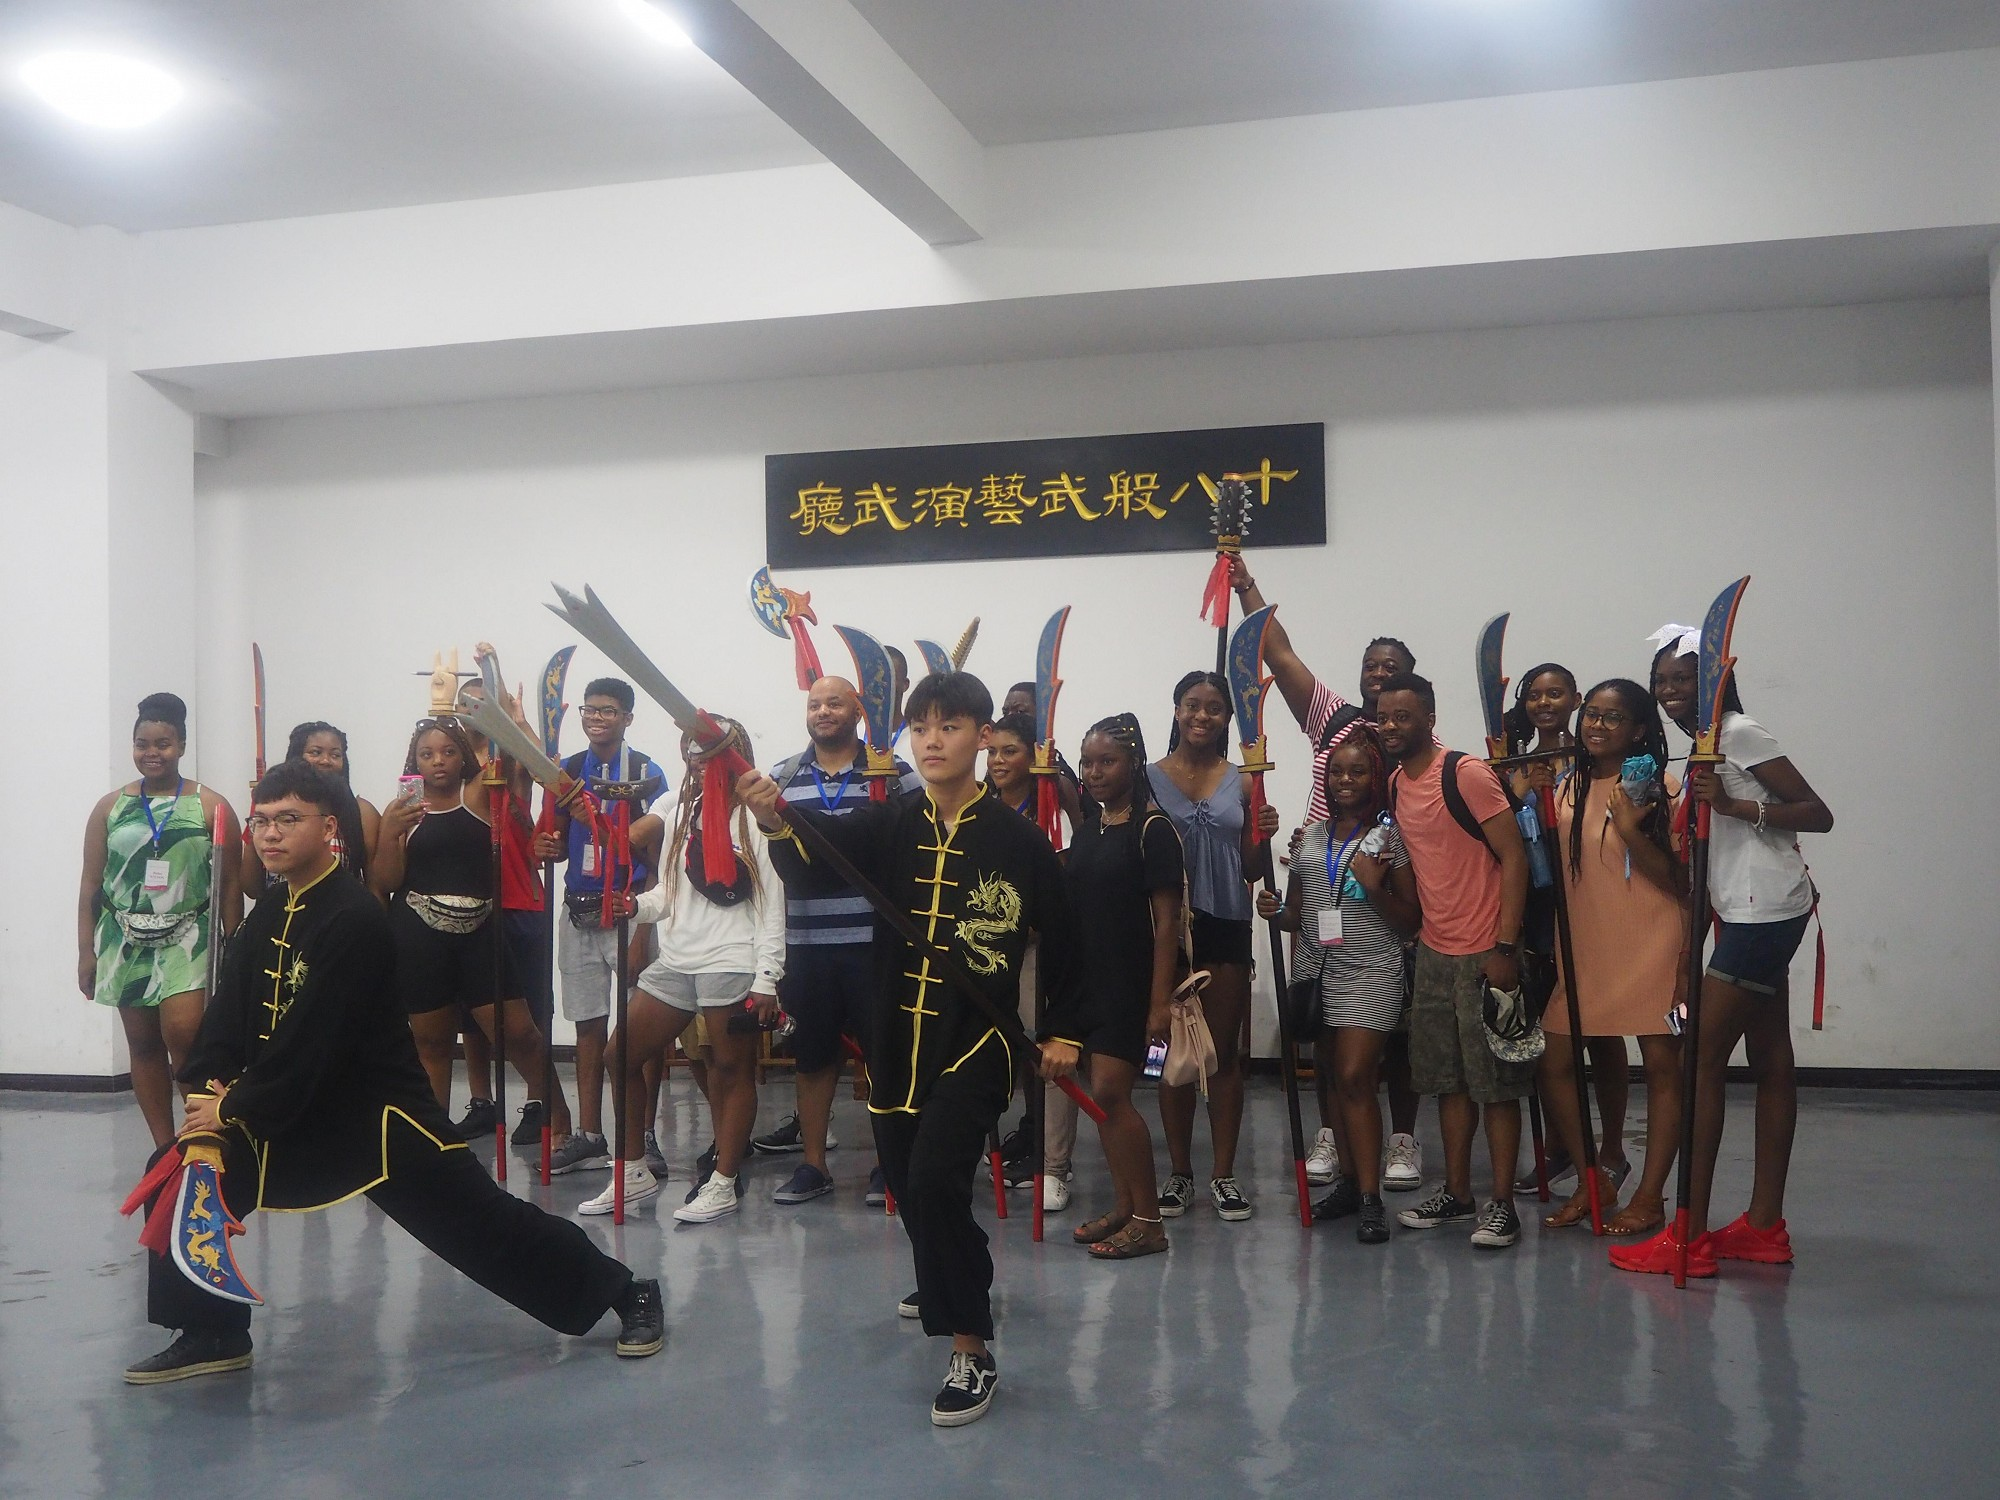 Chicago Urban League Student Mission to China enjoying their Martial Arts workshop at Wangxiang Group